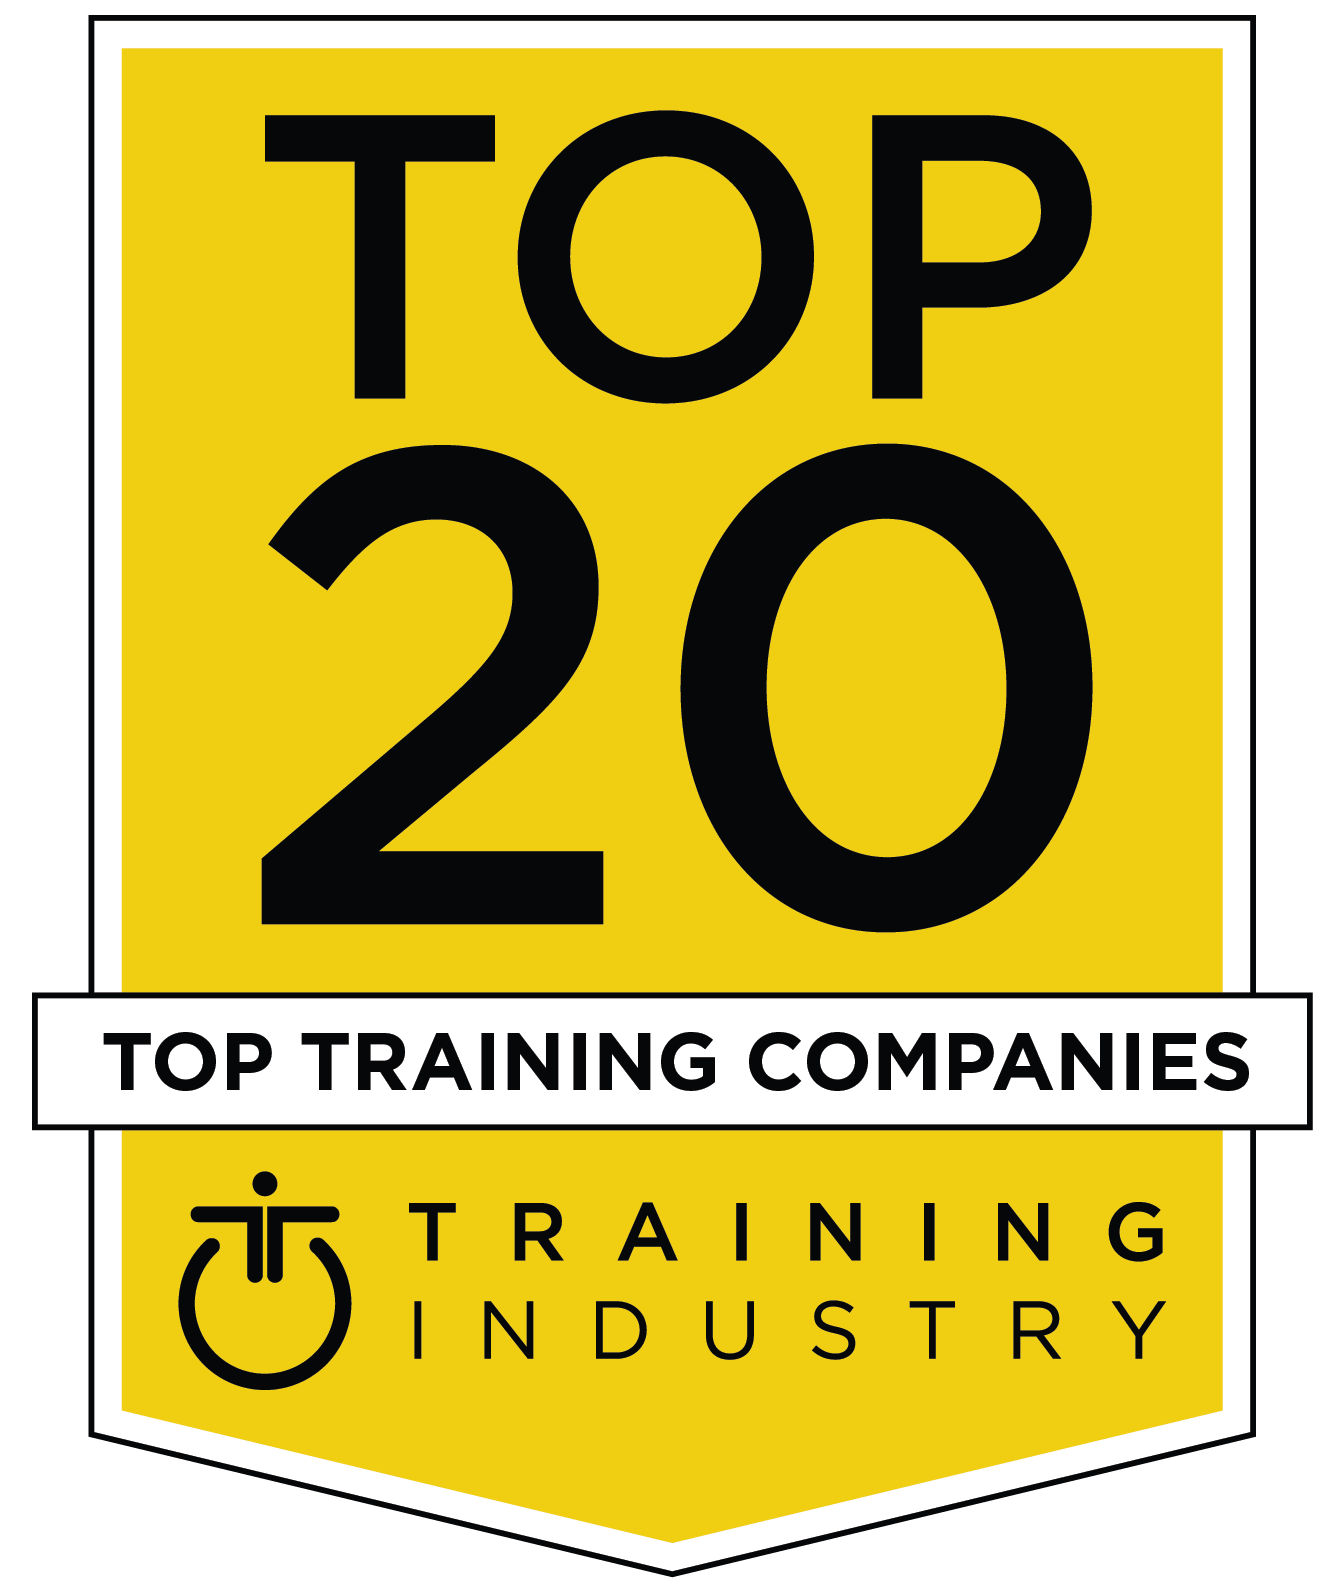 Top Training Companies - Training Industry